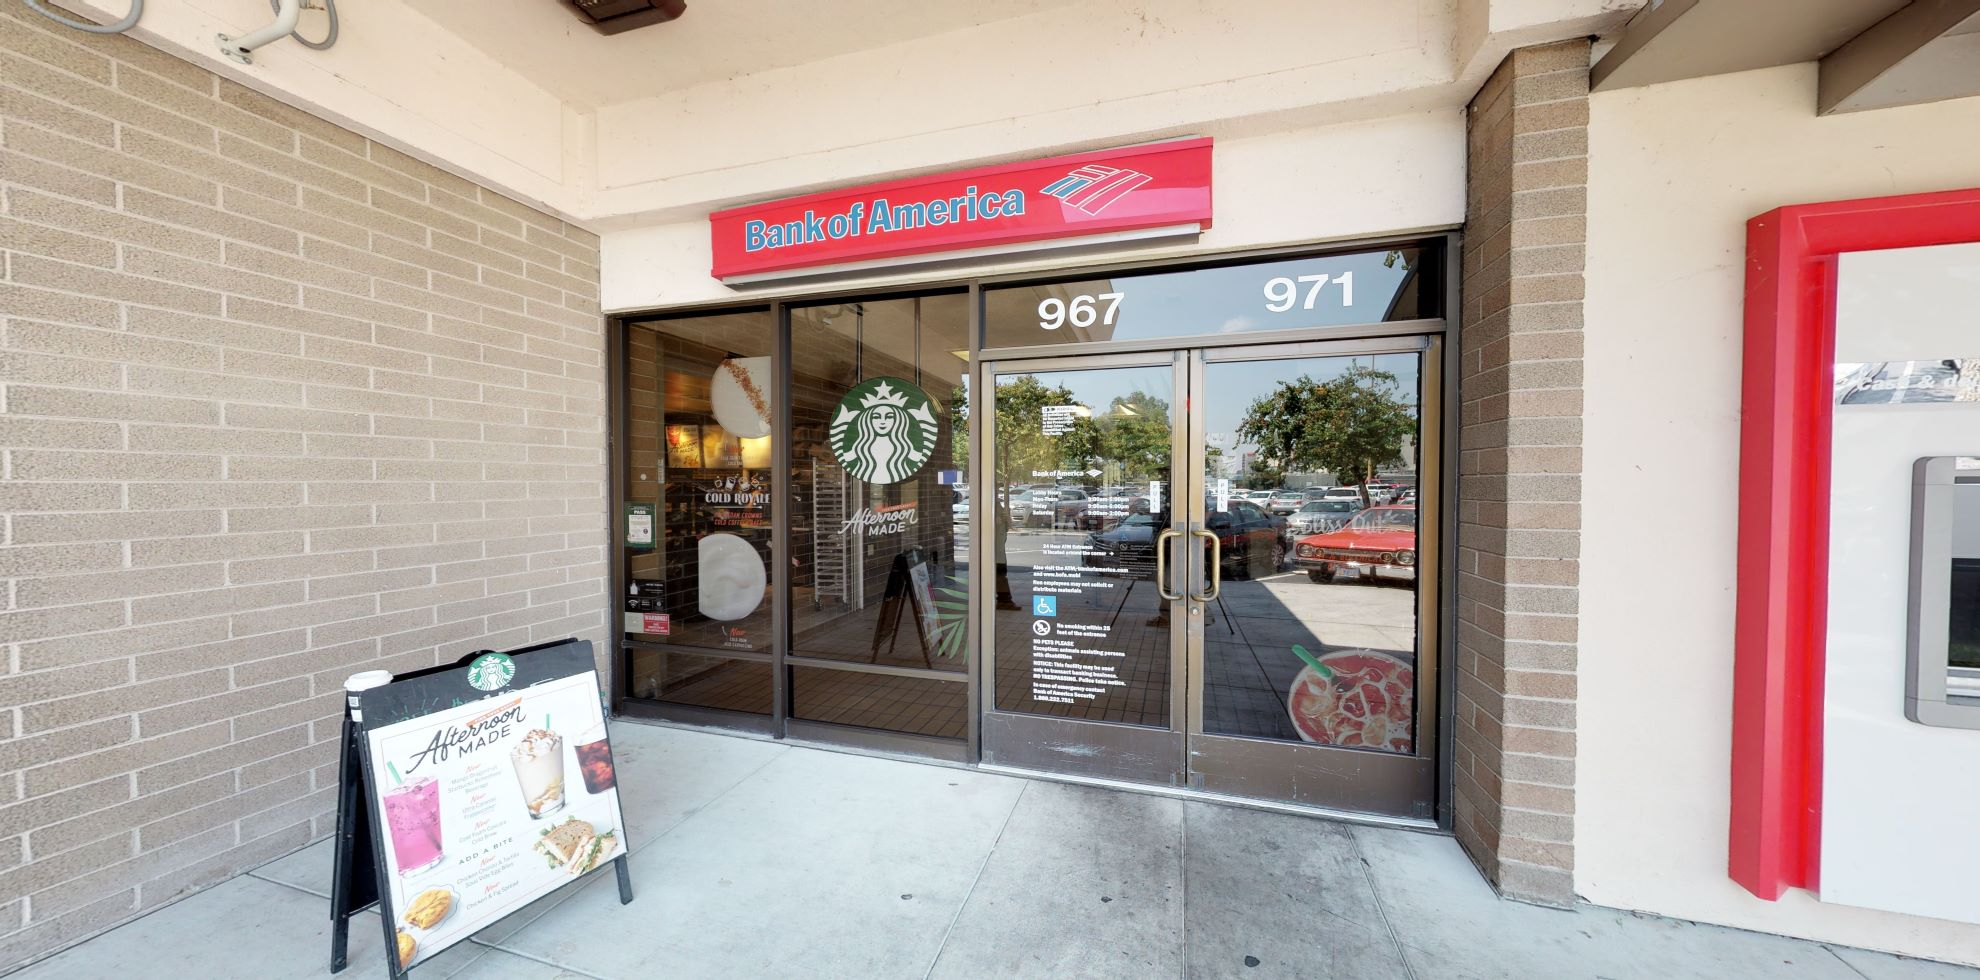 Bank of America financial center with drive-thru ATM   971 Blossom Hill Rd, San Jose, CA 95123